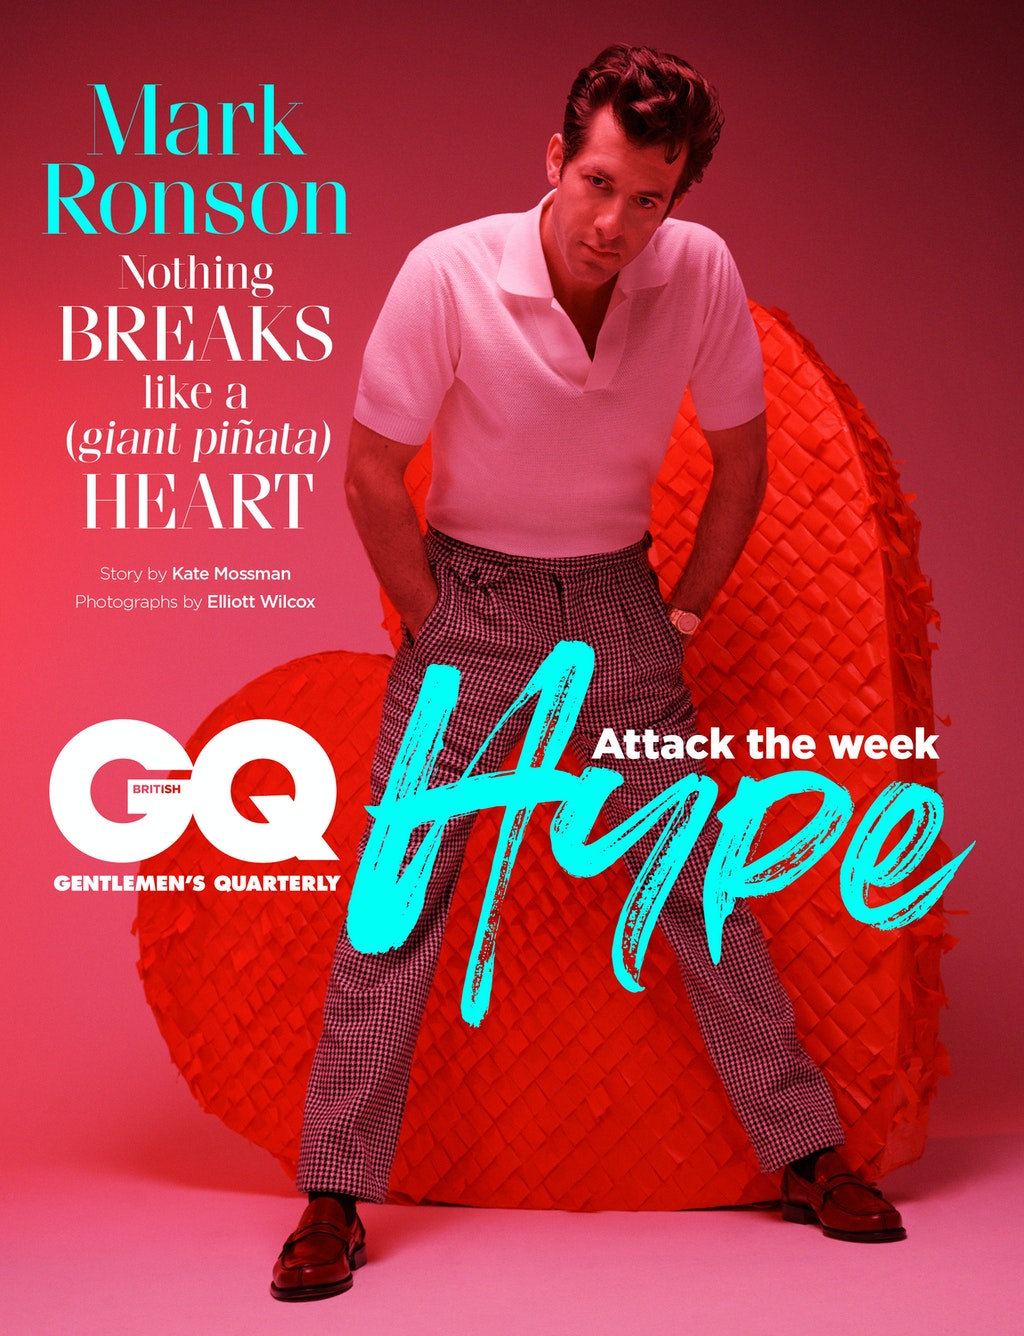 GQ Hype - Mark Ronson